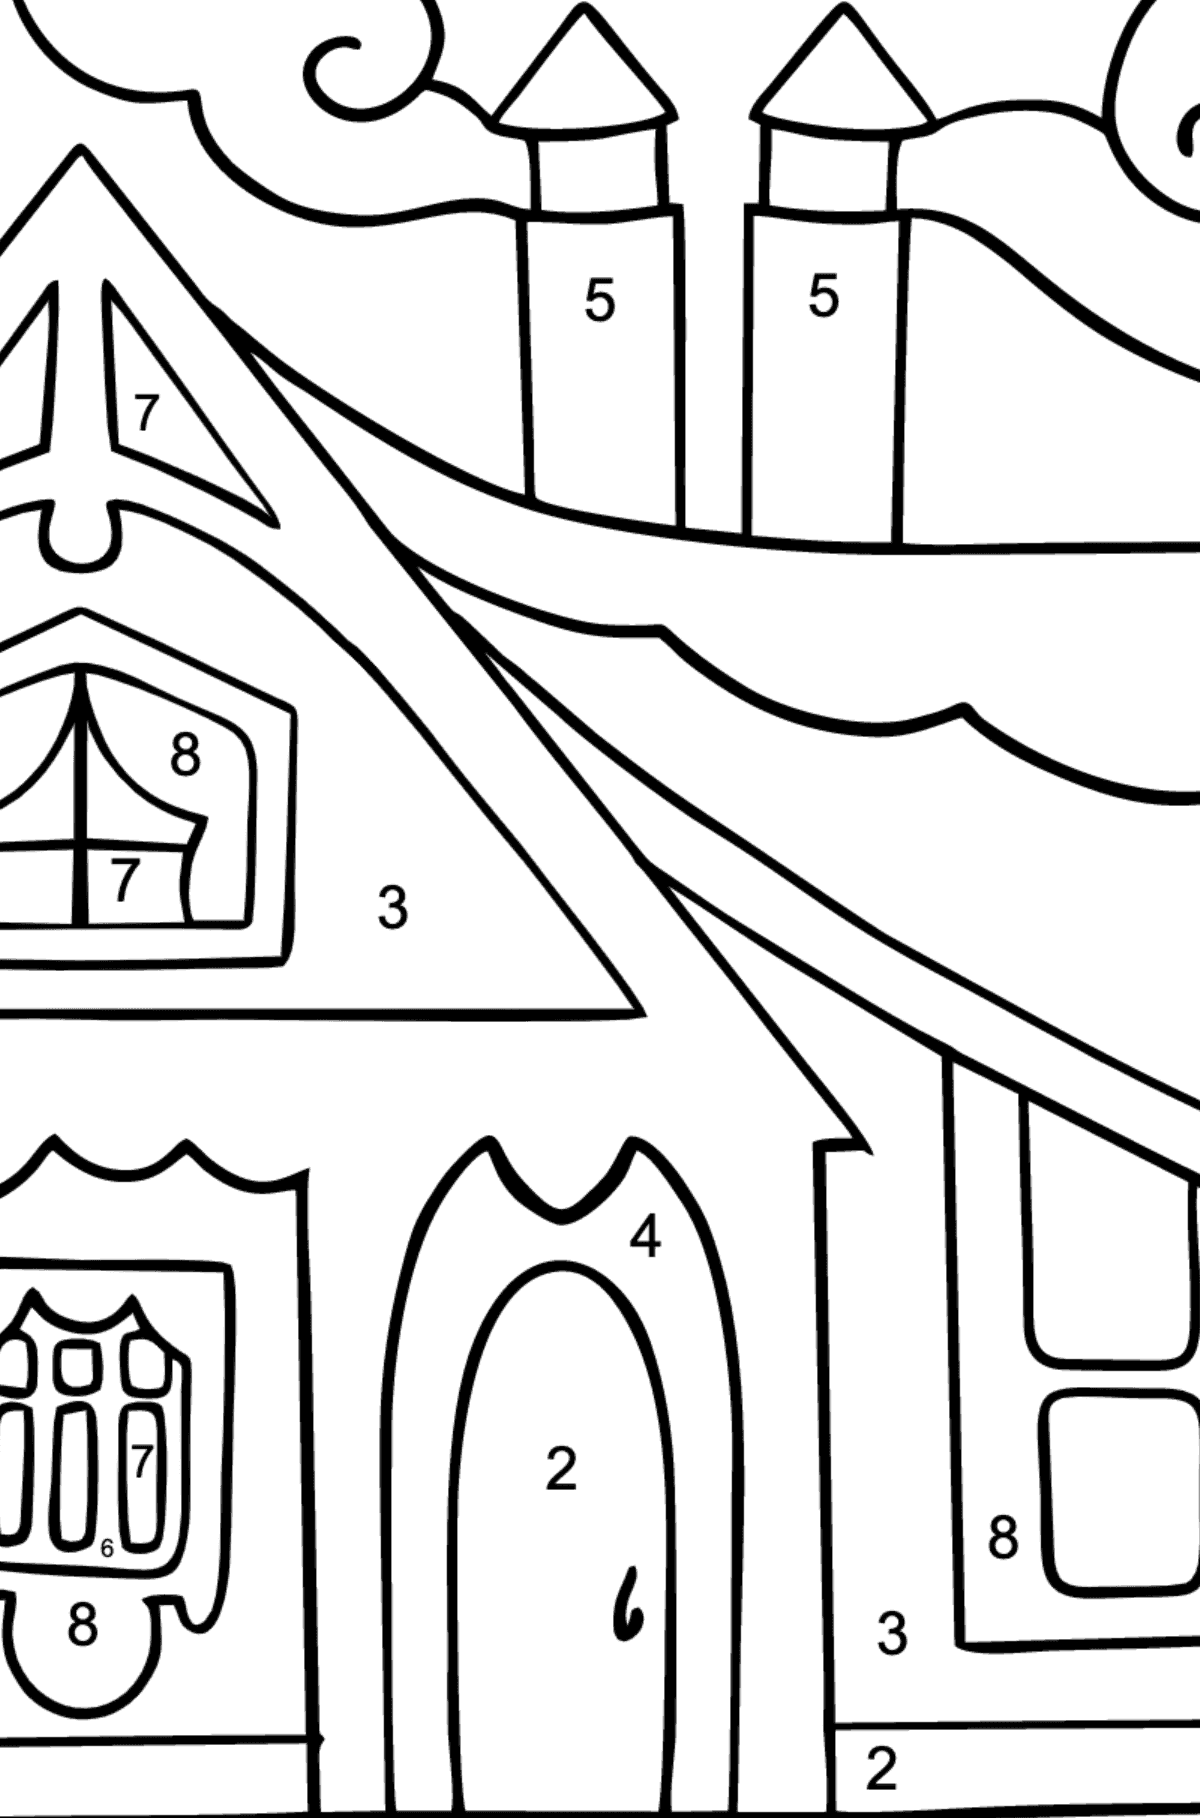 Coloring Page - A Tiny House - Coloring by Numbers for Children